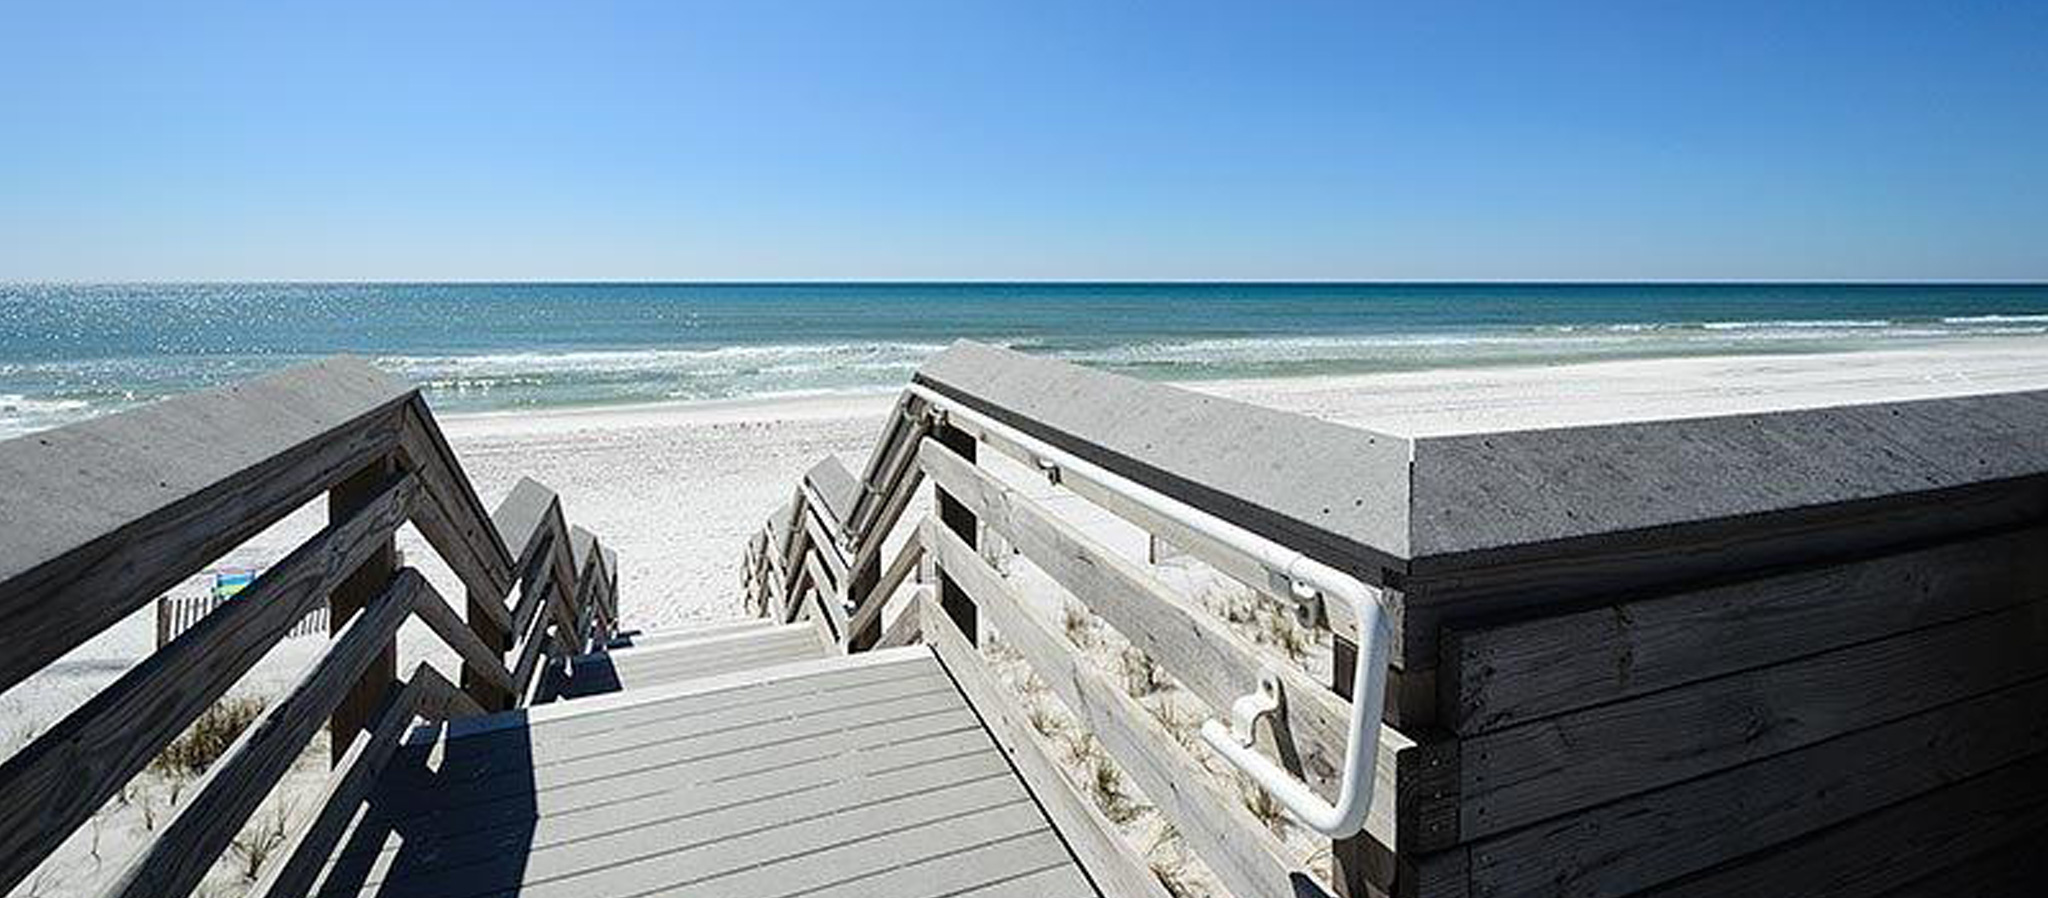 We have Destin FL condo rentals on the beach.